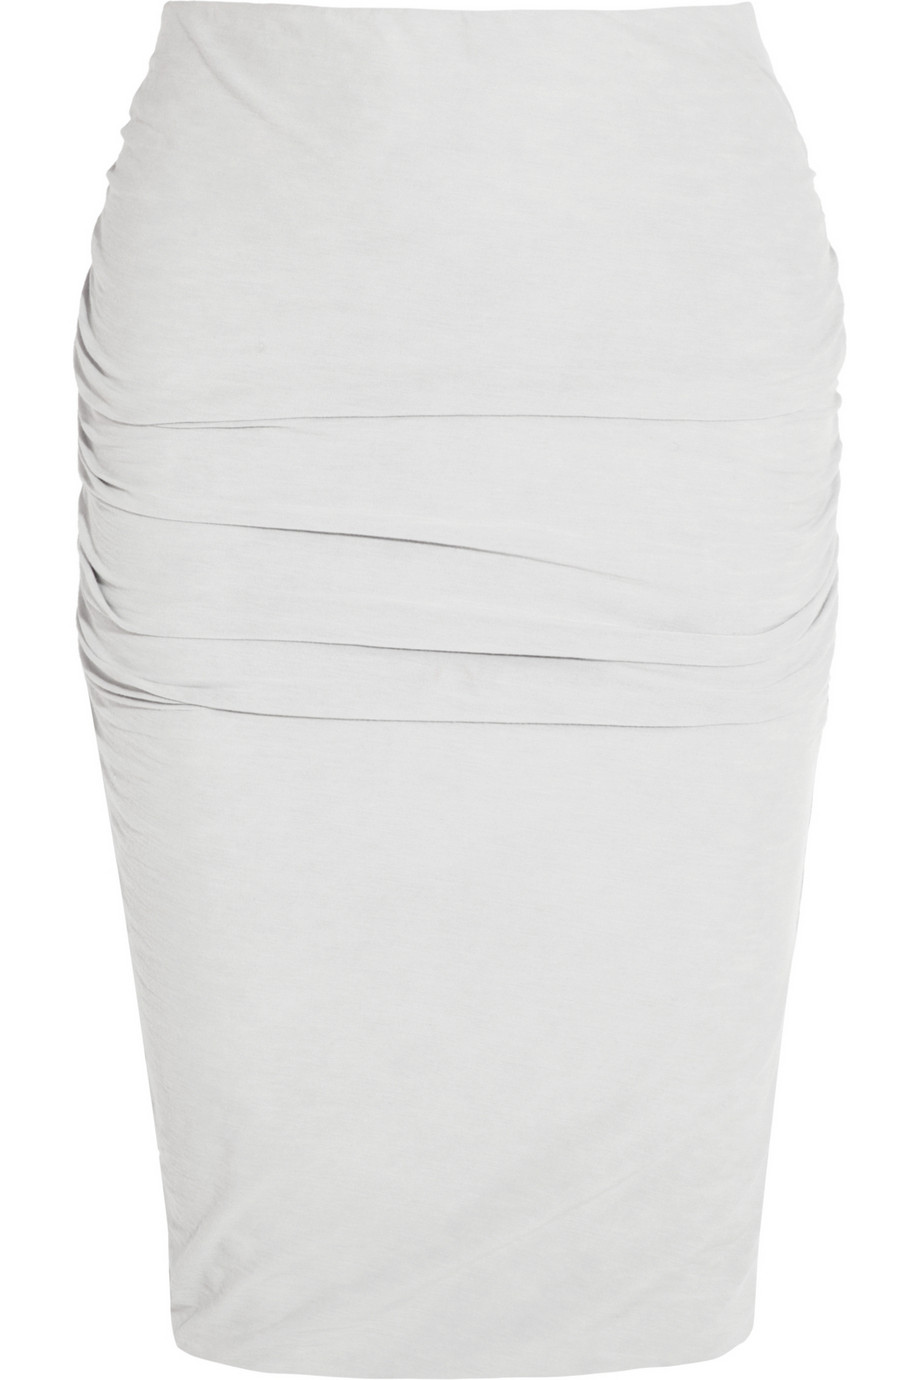 James perse Ruched Jersey Pencil Skirt in Gray | Lyst